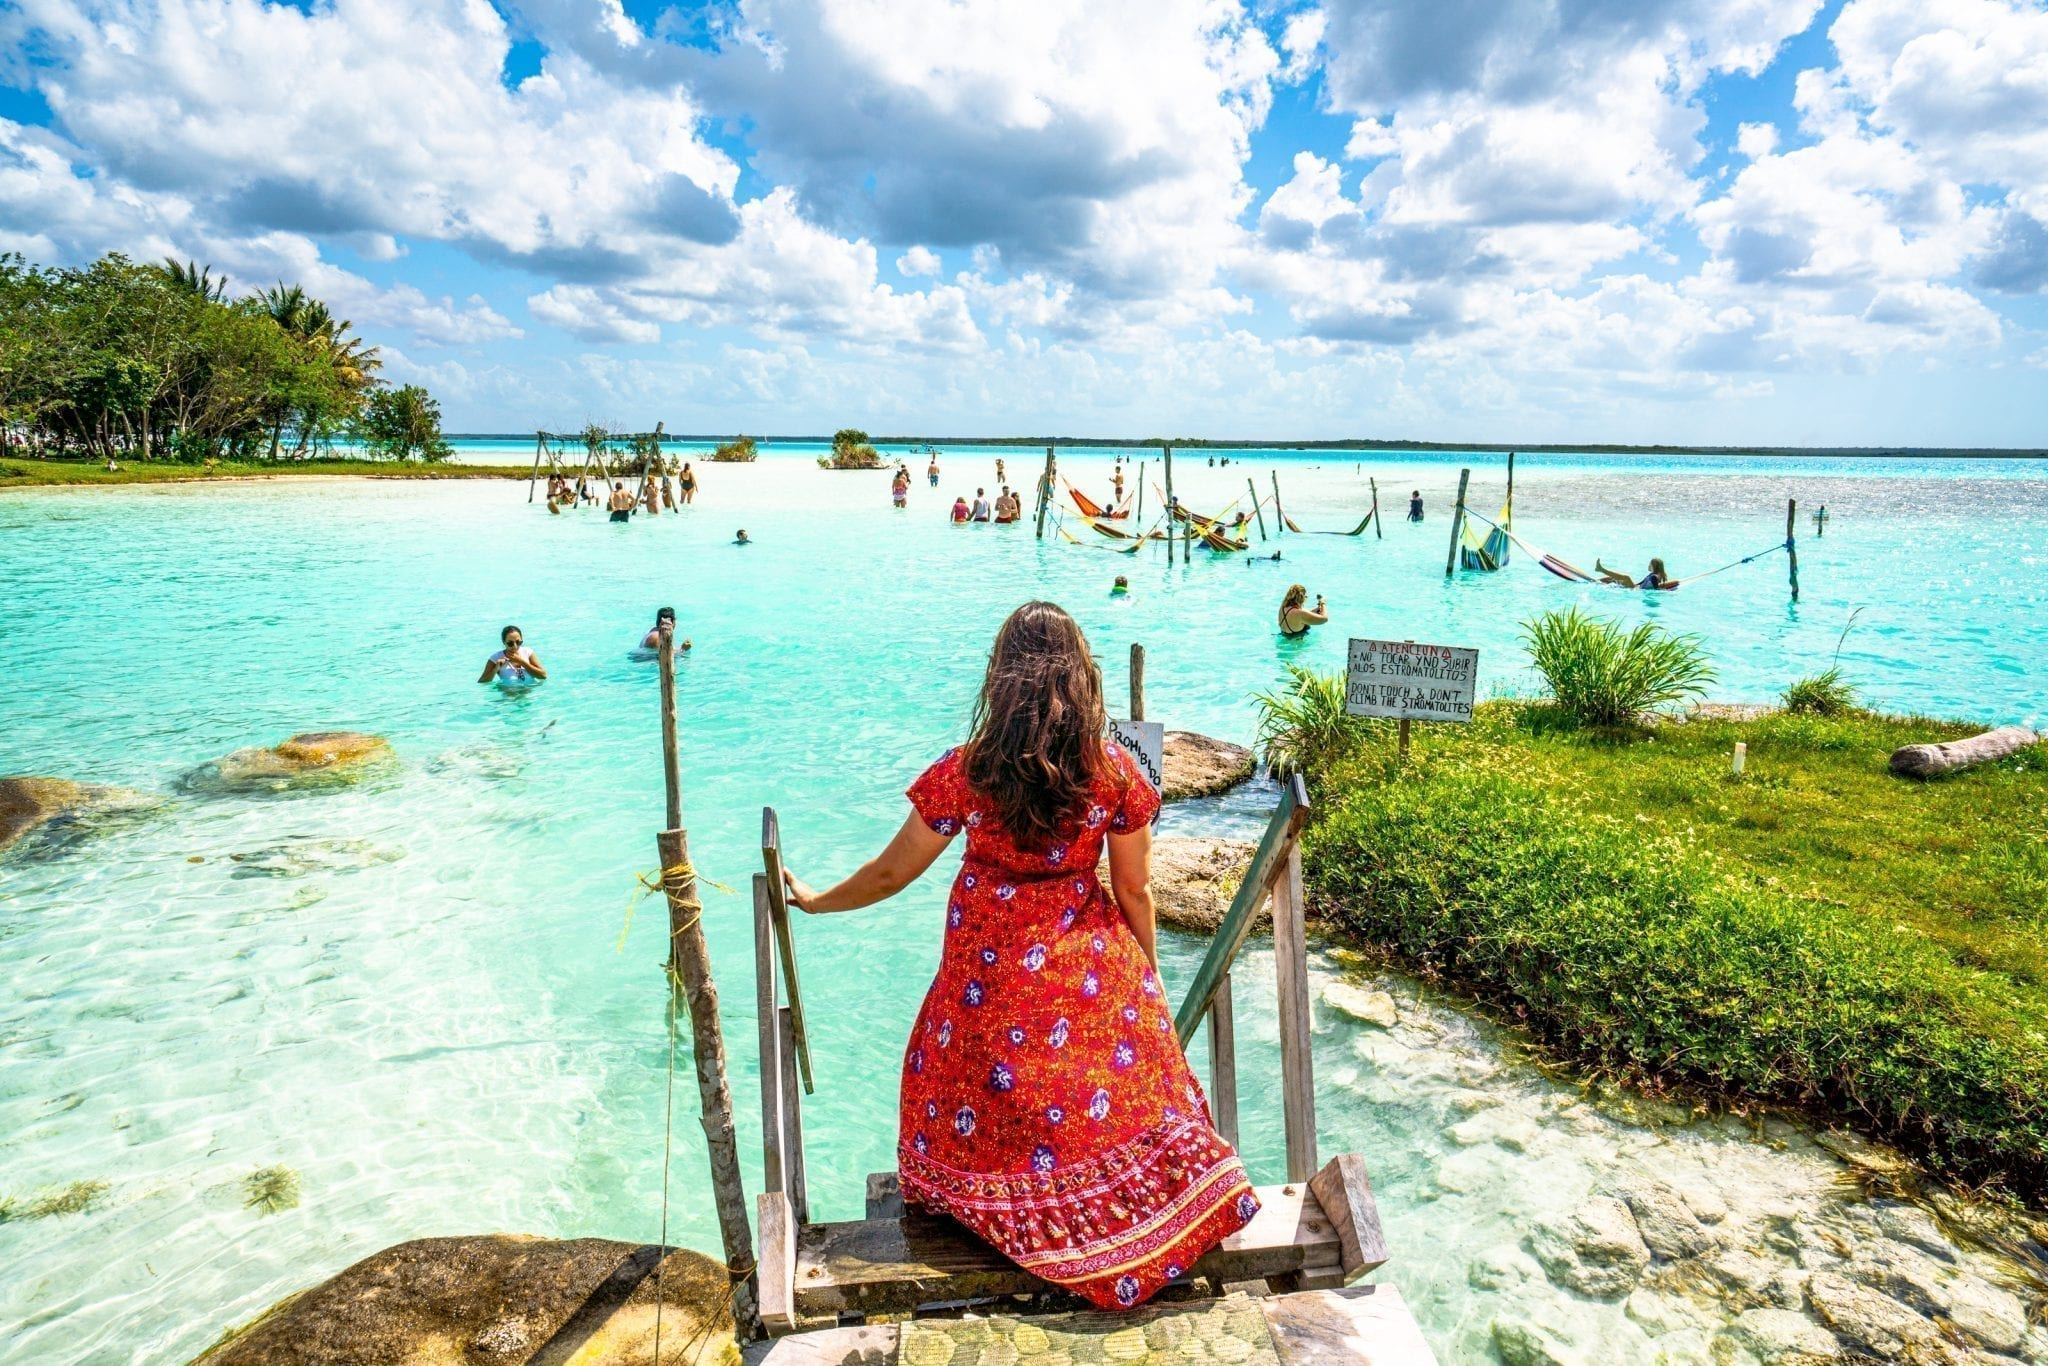 kate storm in a red dress in bacalar mexico, how to save money to travel the world helped us reach this destination